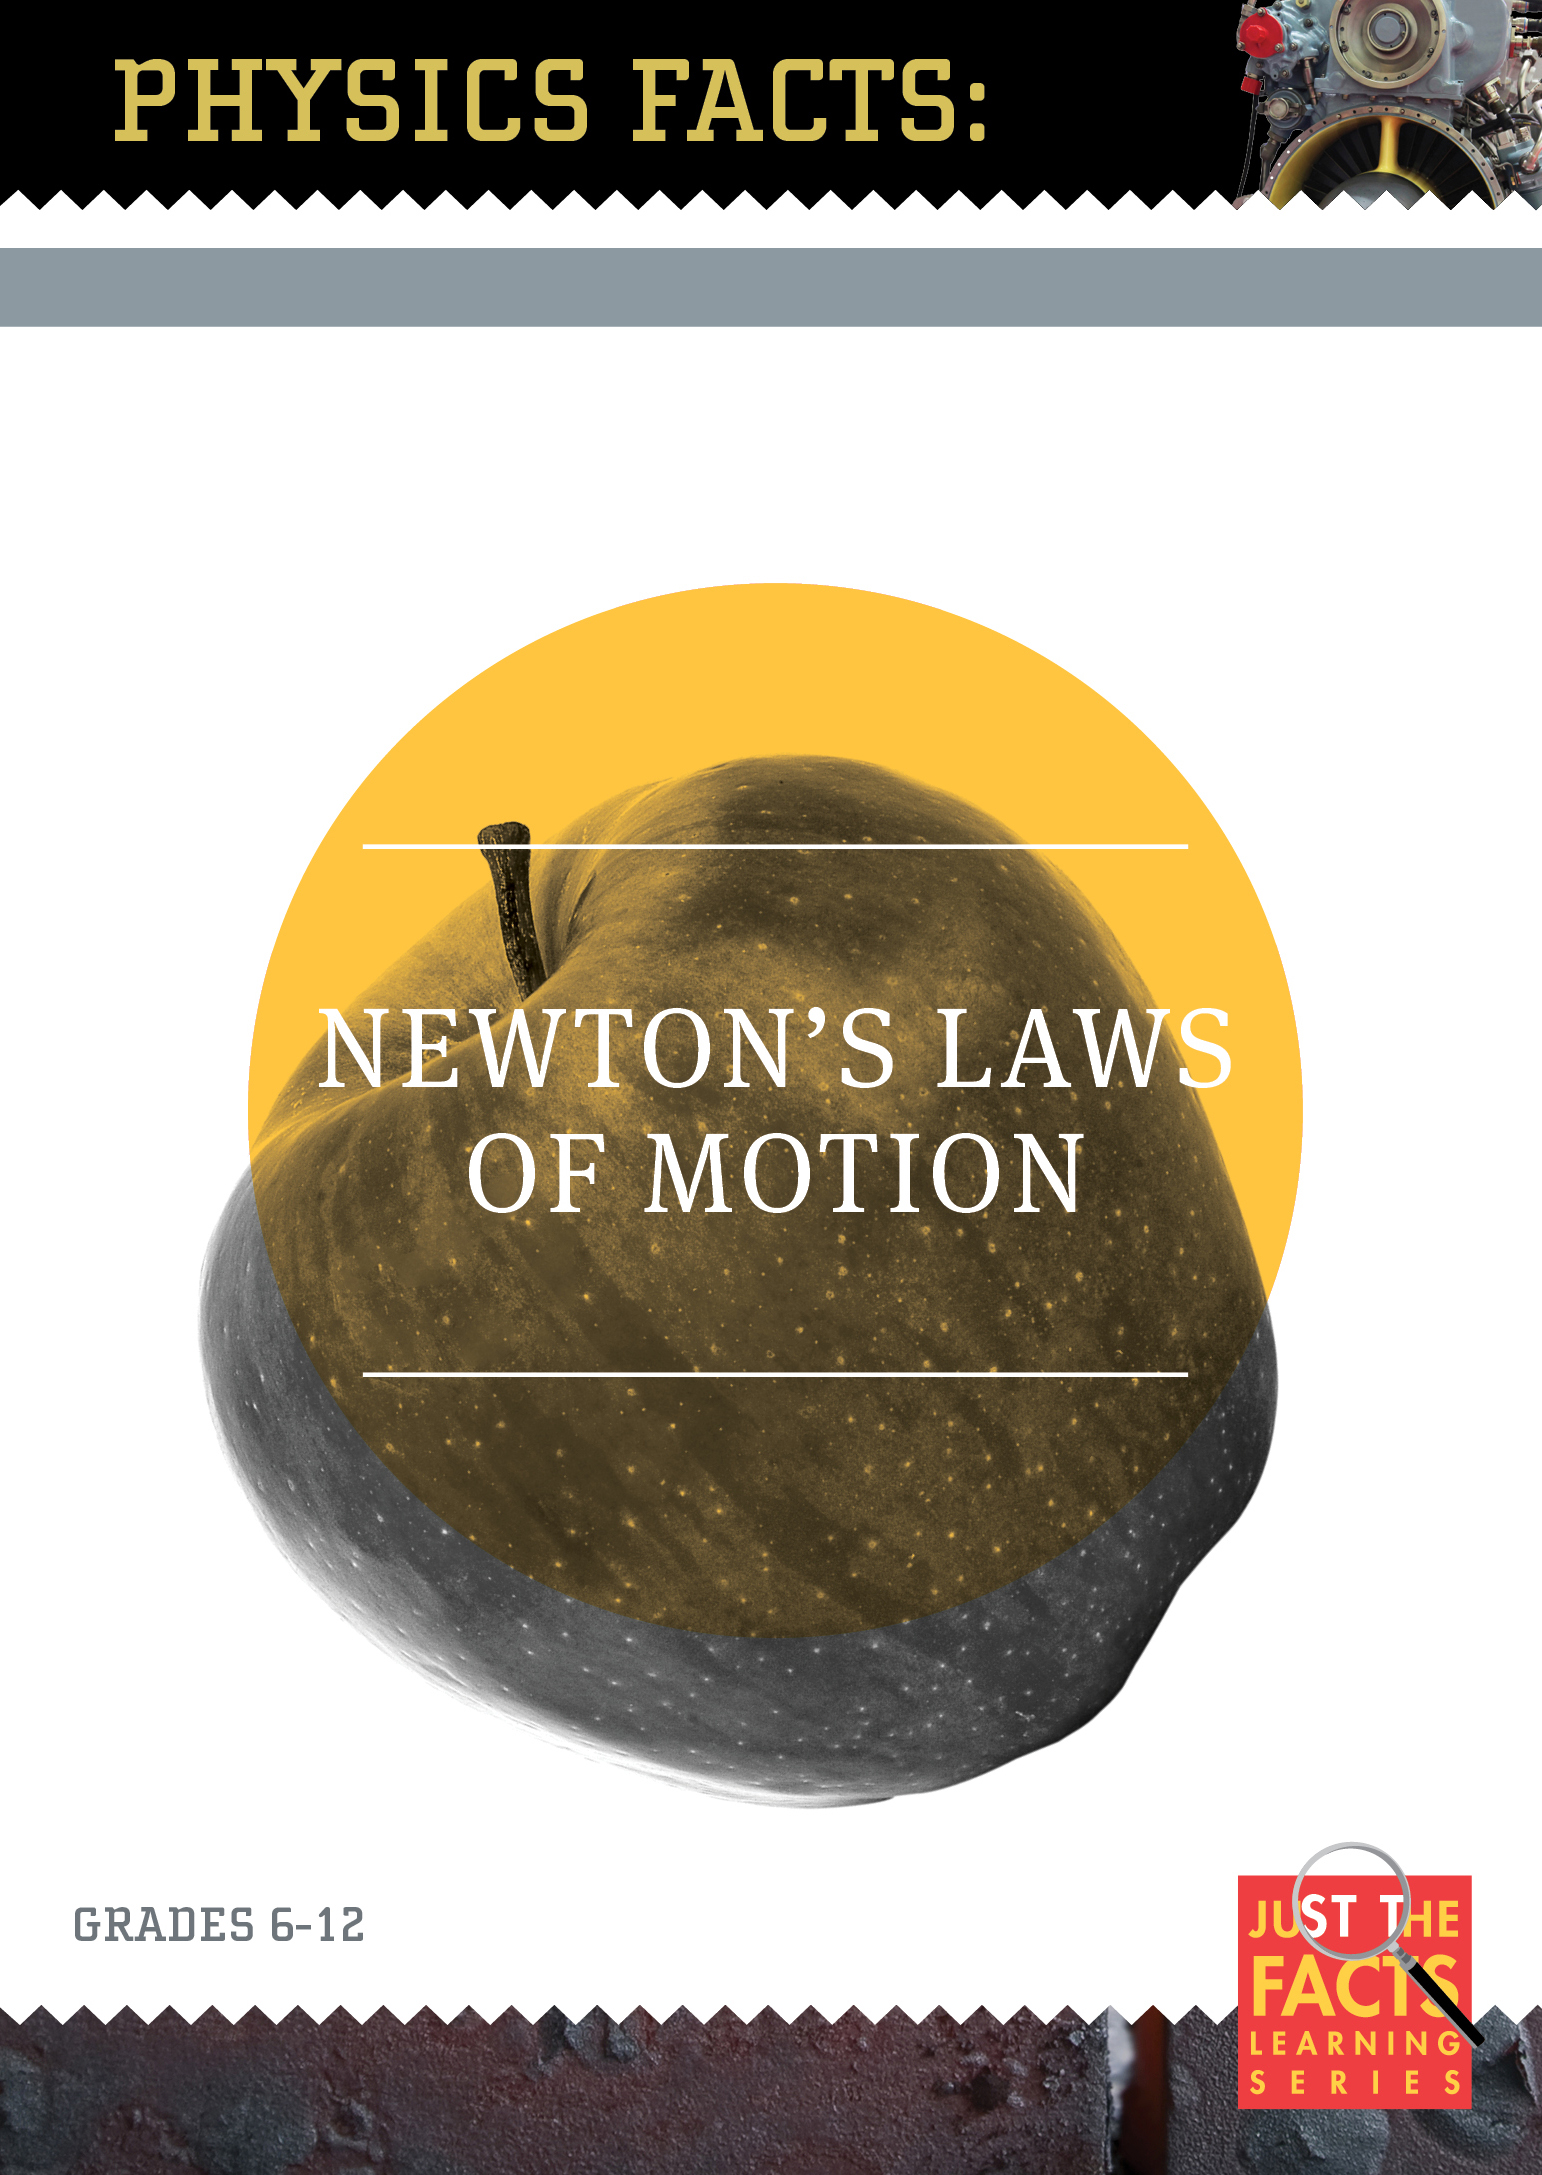 Physics Facts: Newtons Laws of Motion